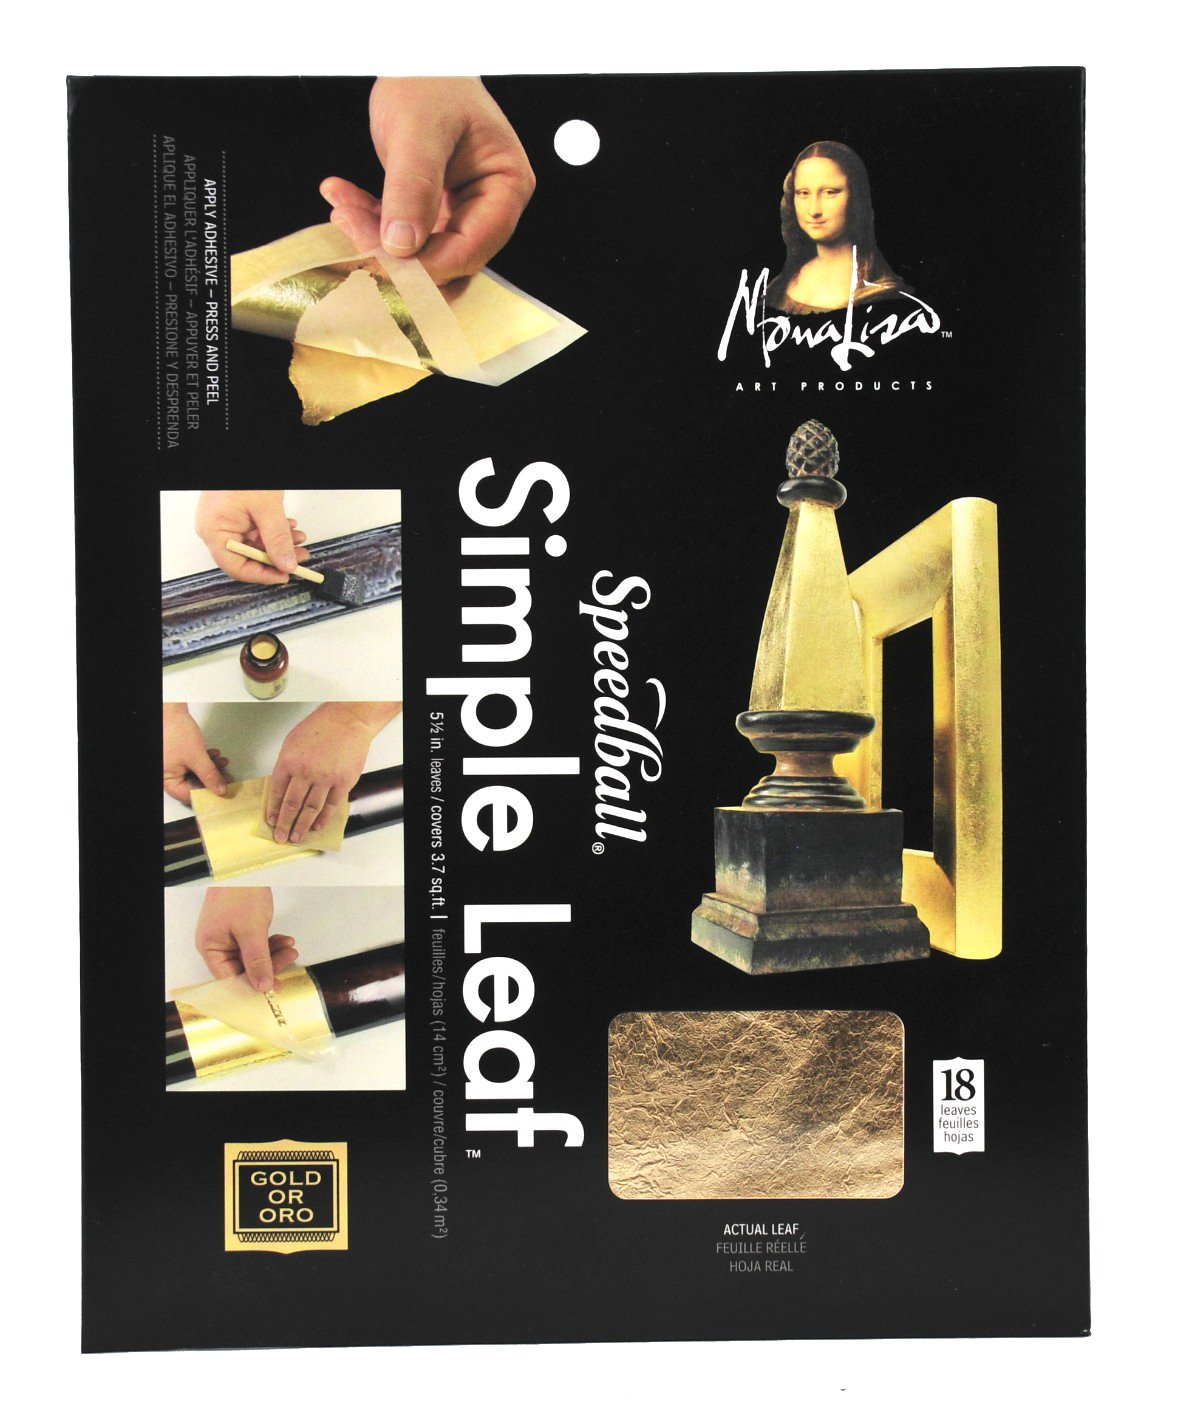 Speedball 10032 Mona Lisa Copper Simple Leaf For Metal Leafing Projects, 5-1/2 x 5-1/2 Inches - 18 Pack